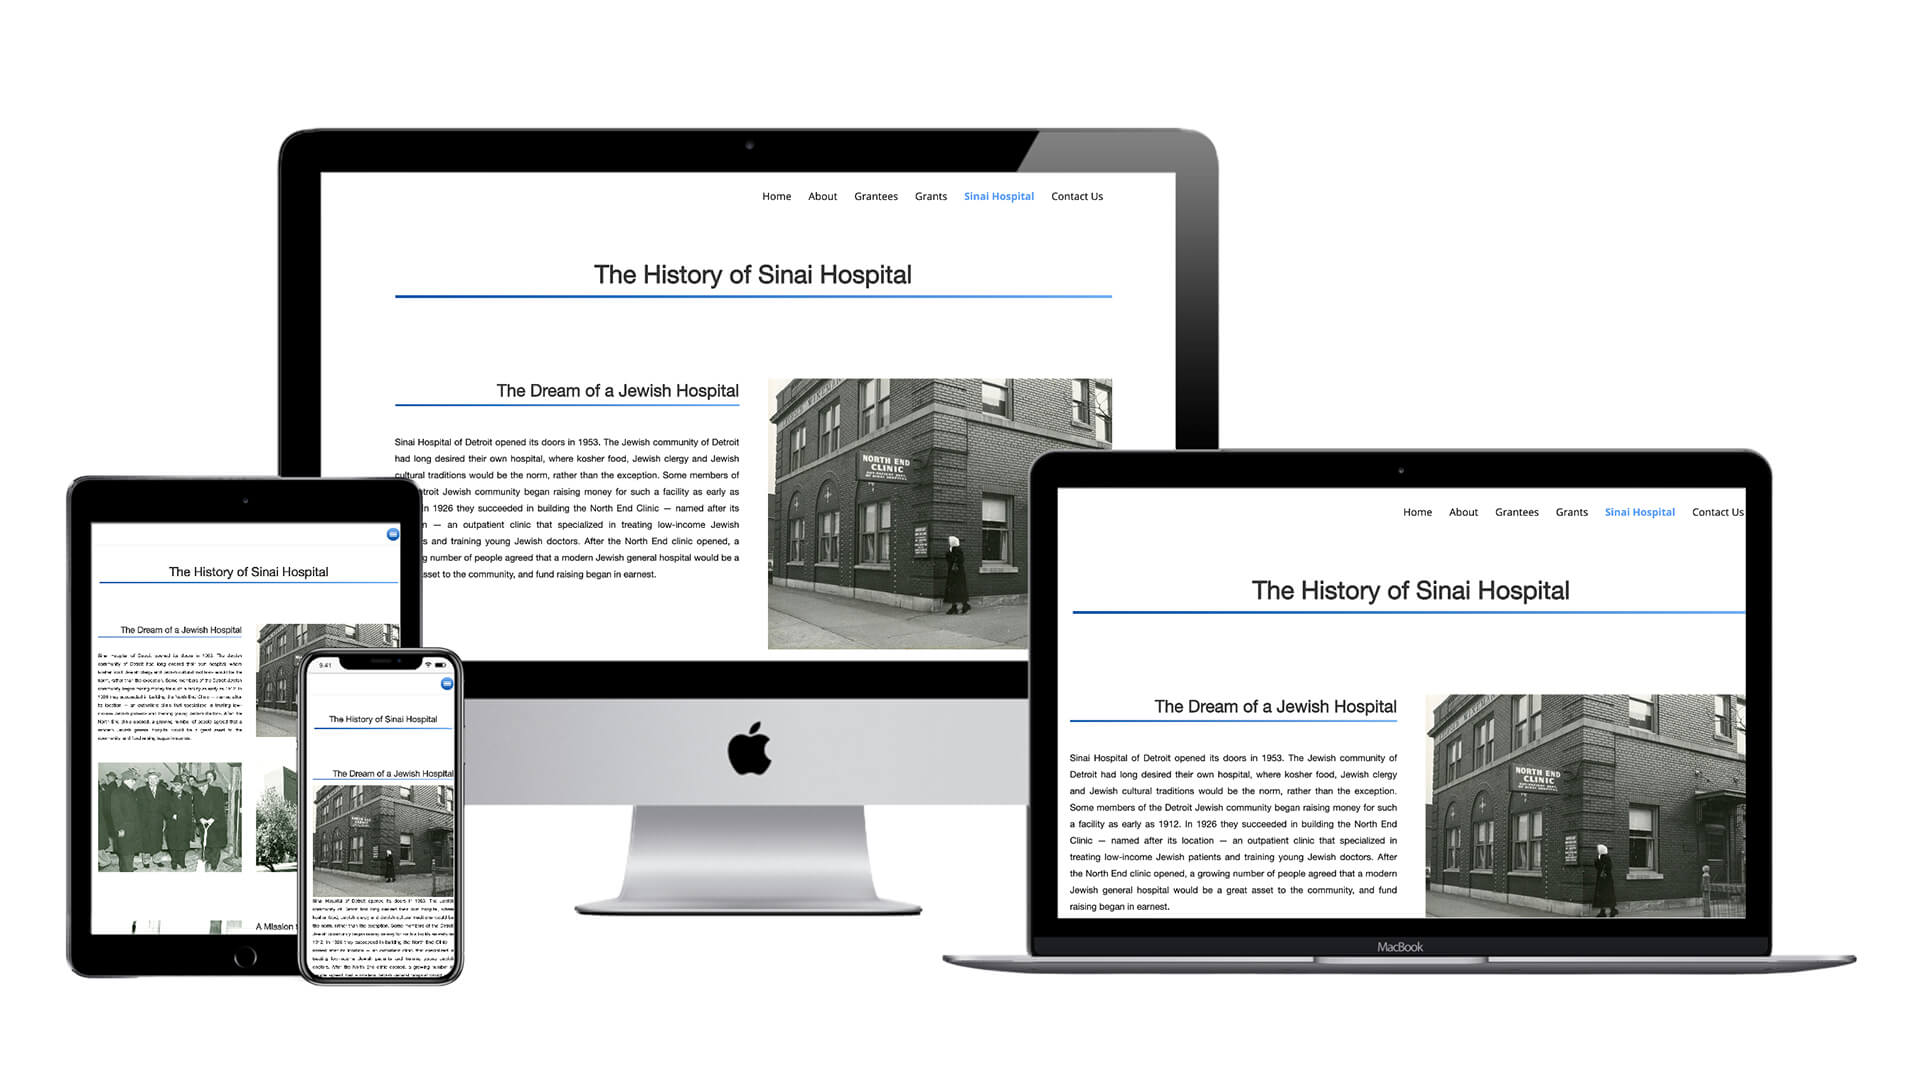 Photo of the History of Sinai Hospital Page on the website created by Clamshell Communications for the Sinai Medical Staff Foundation on four device screens